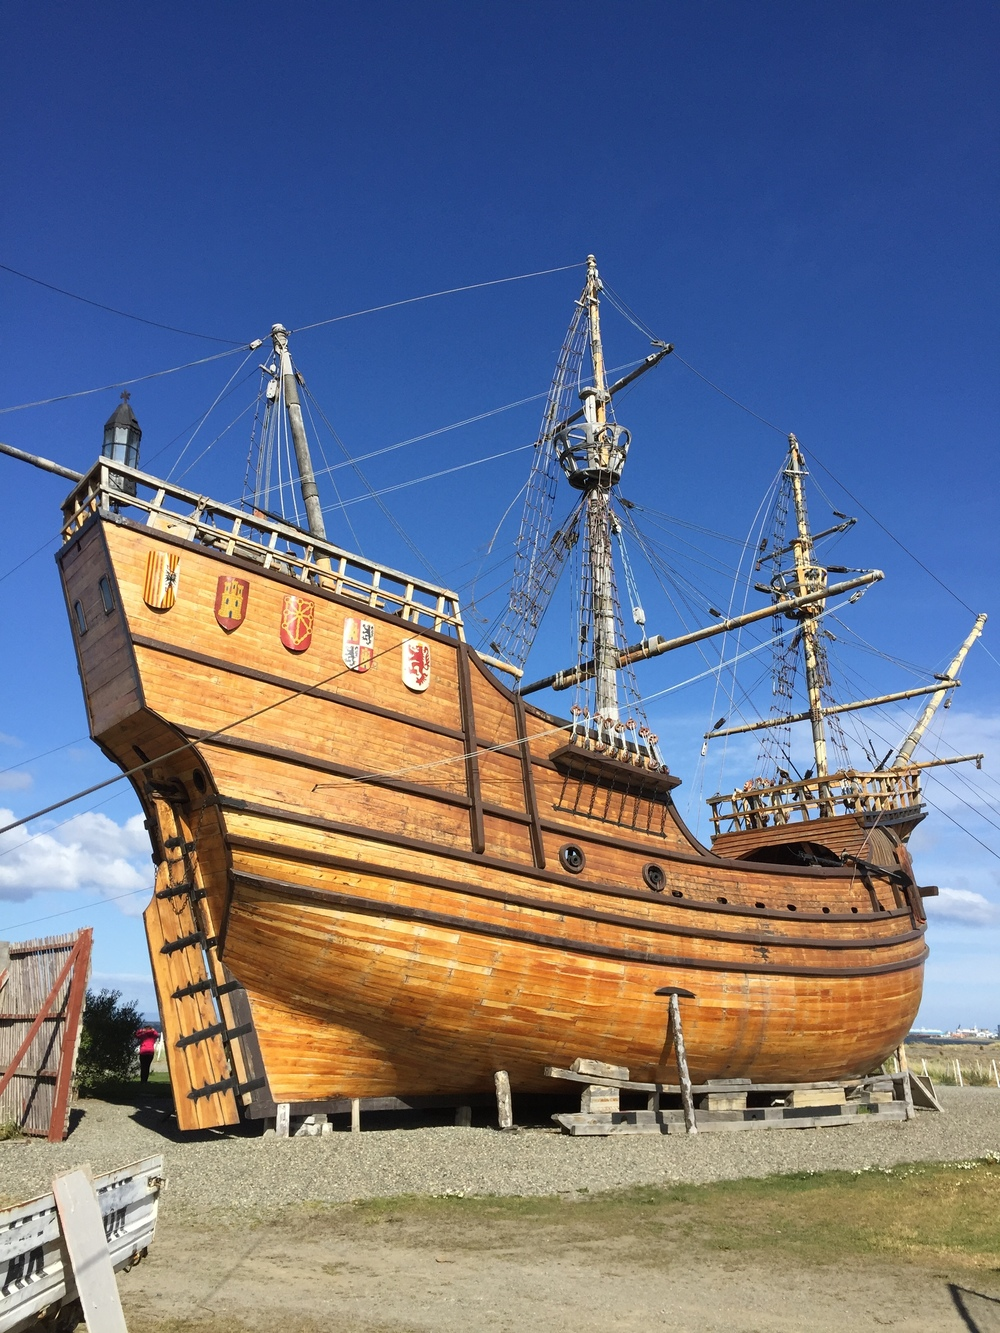 Replica of one of Magellan's ships, outside of Punta Arenas, overlooking the Straits of Magellan.